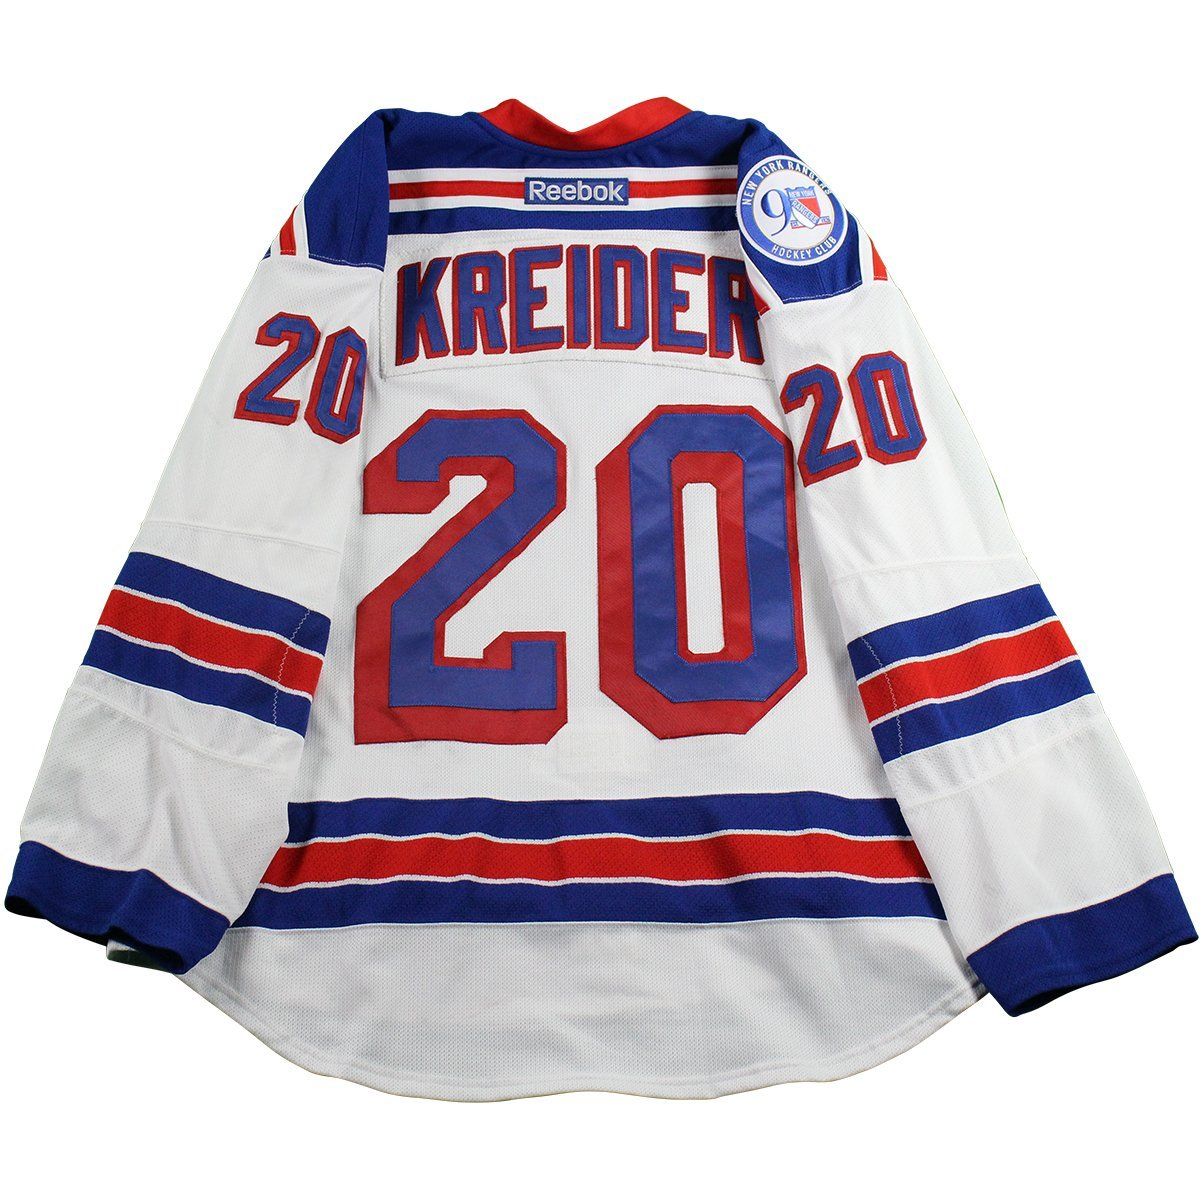 reputable site 07e6a d2e89 Chris Kreider New York Rangers 2016-2017 Game Used #20 White Jersey w/ 90th  Anniversary Patch (10/15/2016) (Size 58)